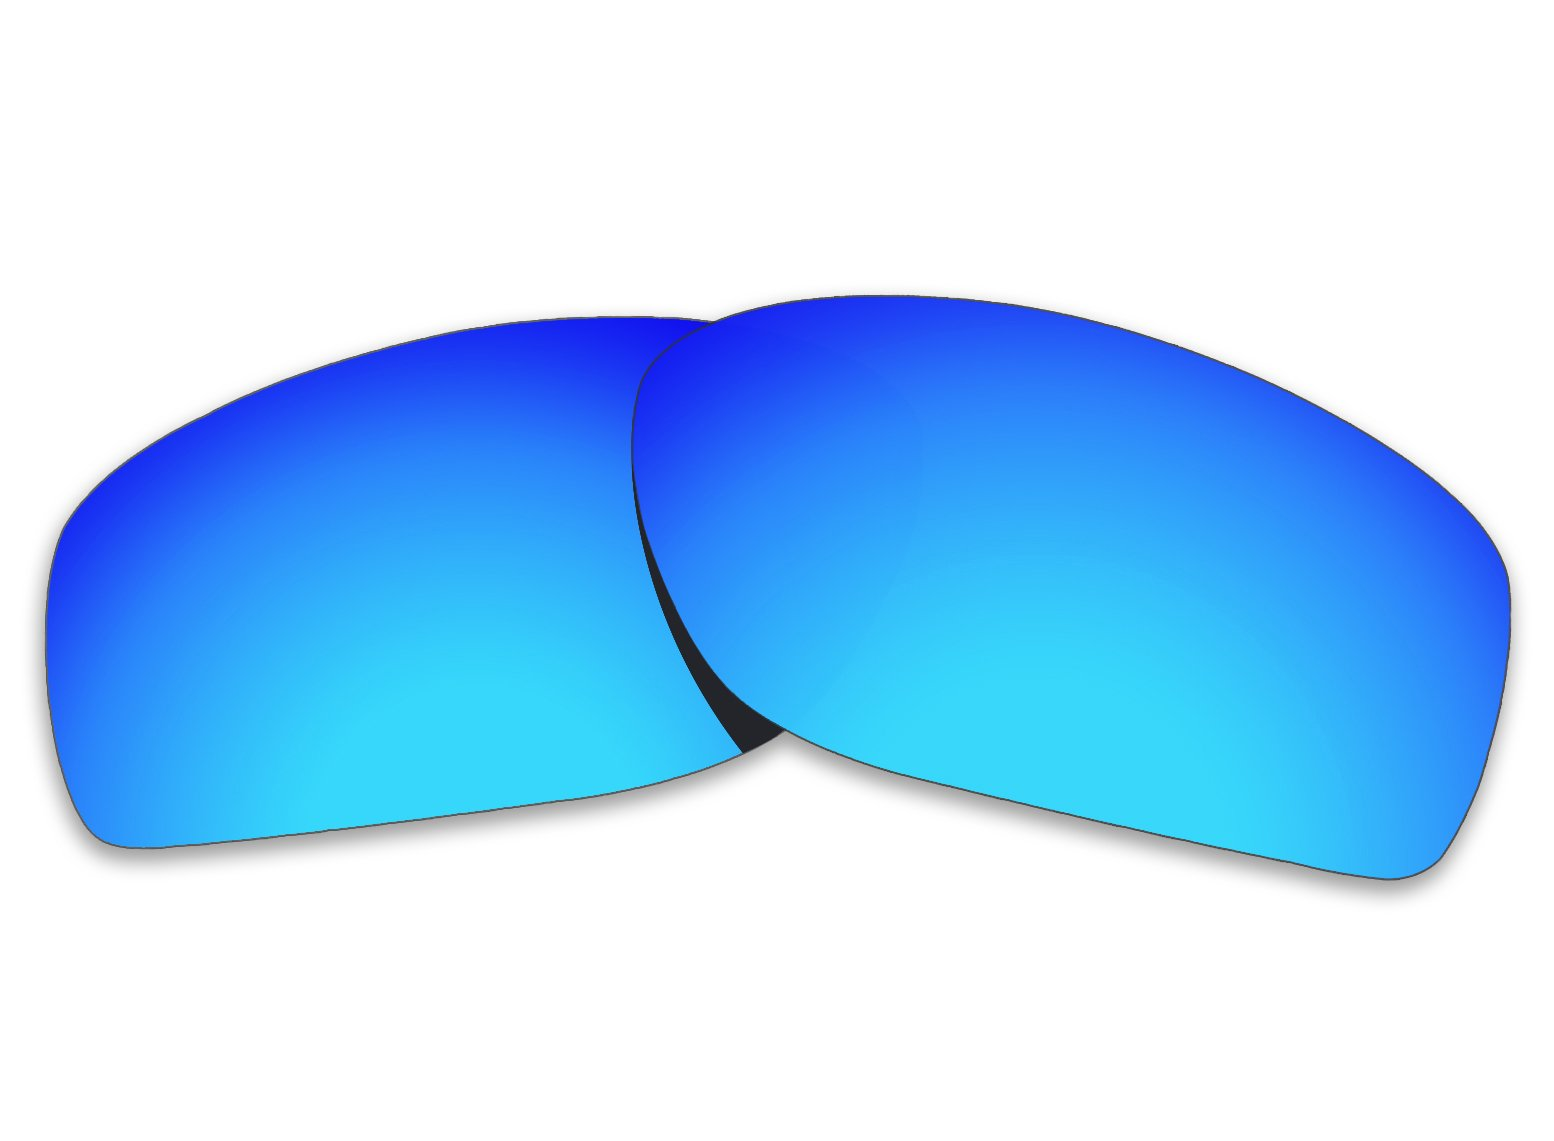 COLOR STAY LENSES 2.0mm Thickness Polarized Replacement Lenses for Oakley Conductor 8 OO4107 Titanium Mirror Coatings (Blue Mirror) by COLOR STAY LENSES